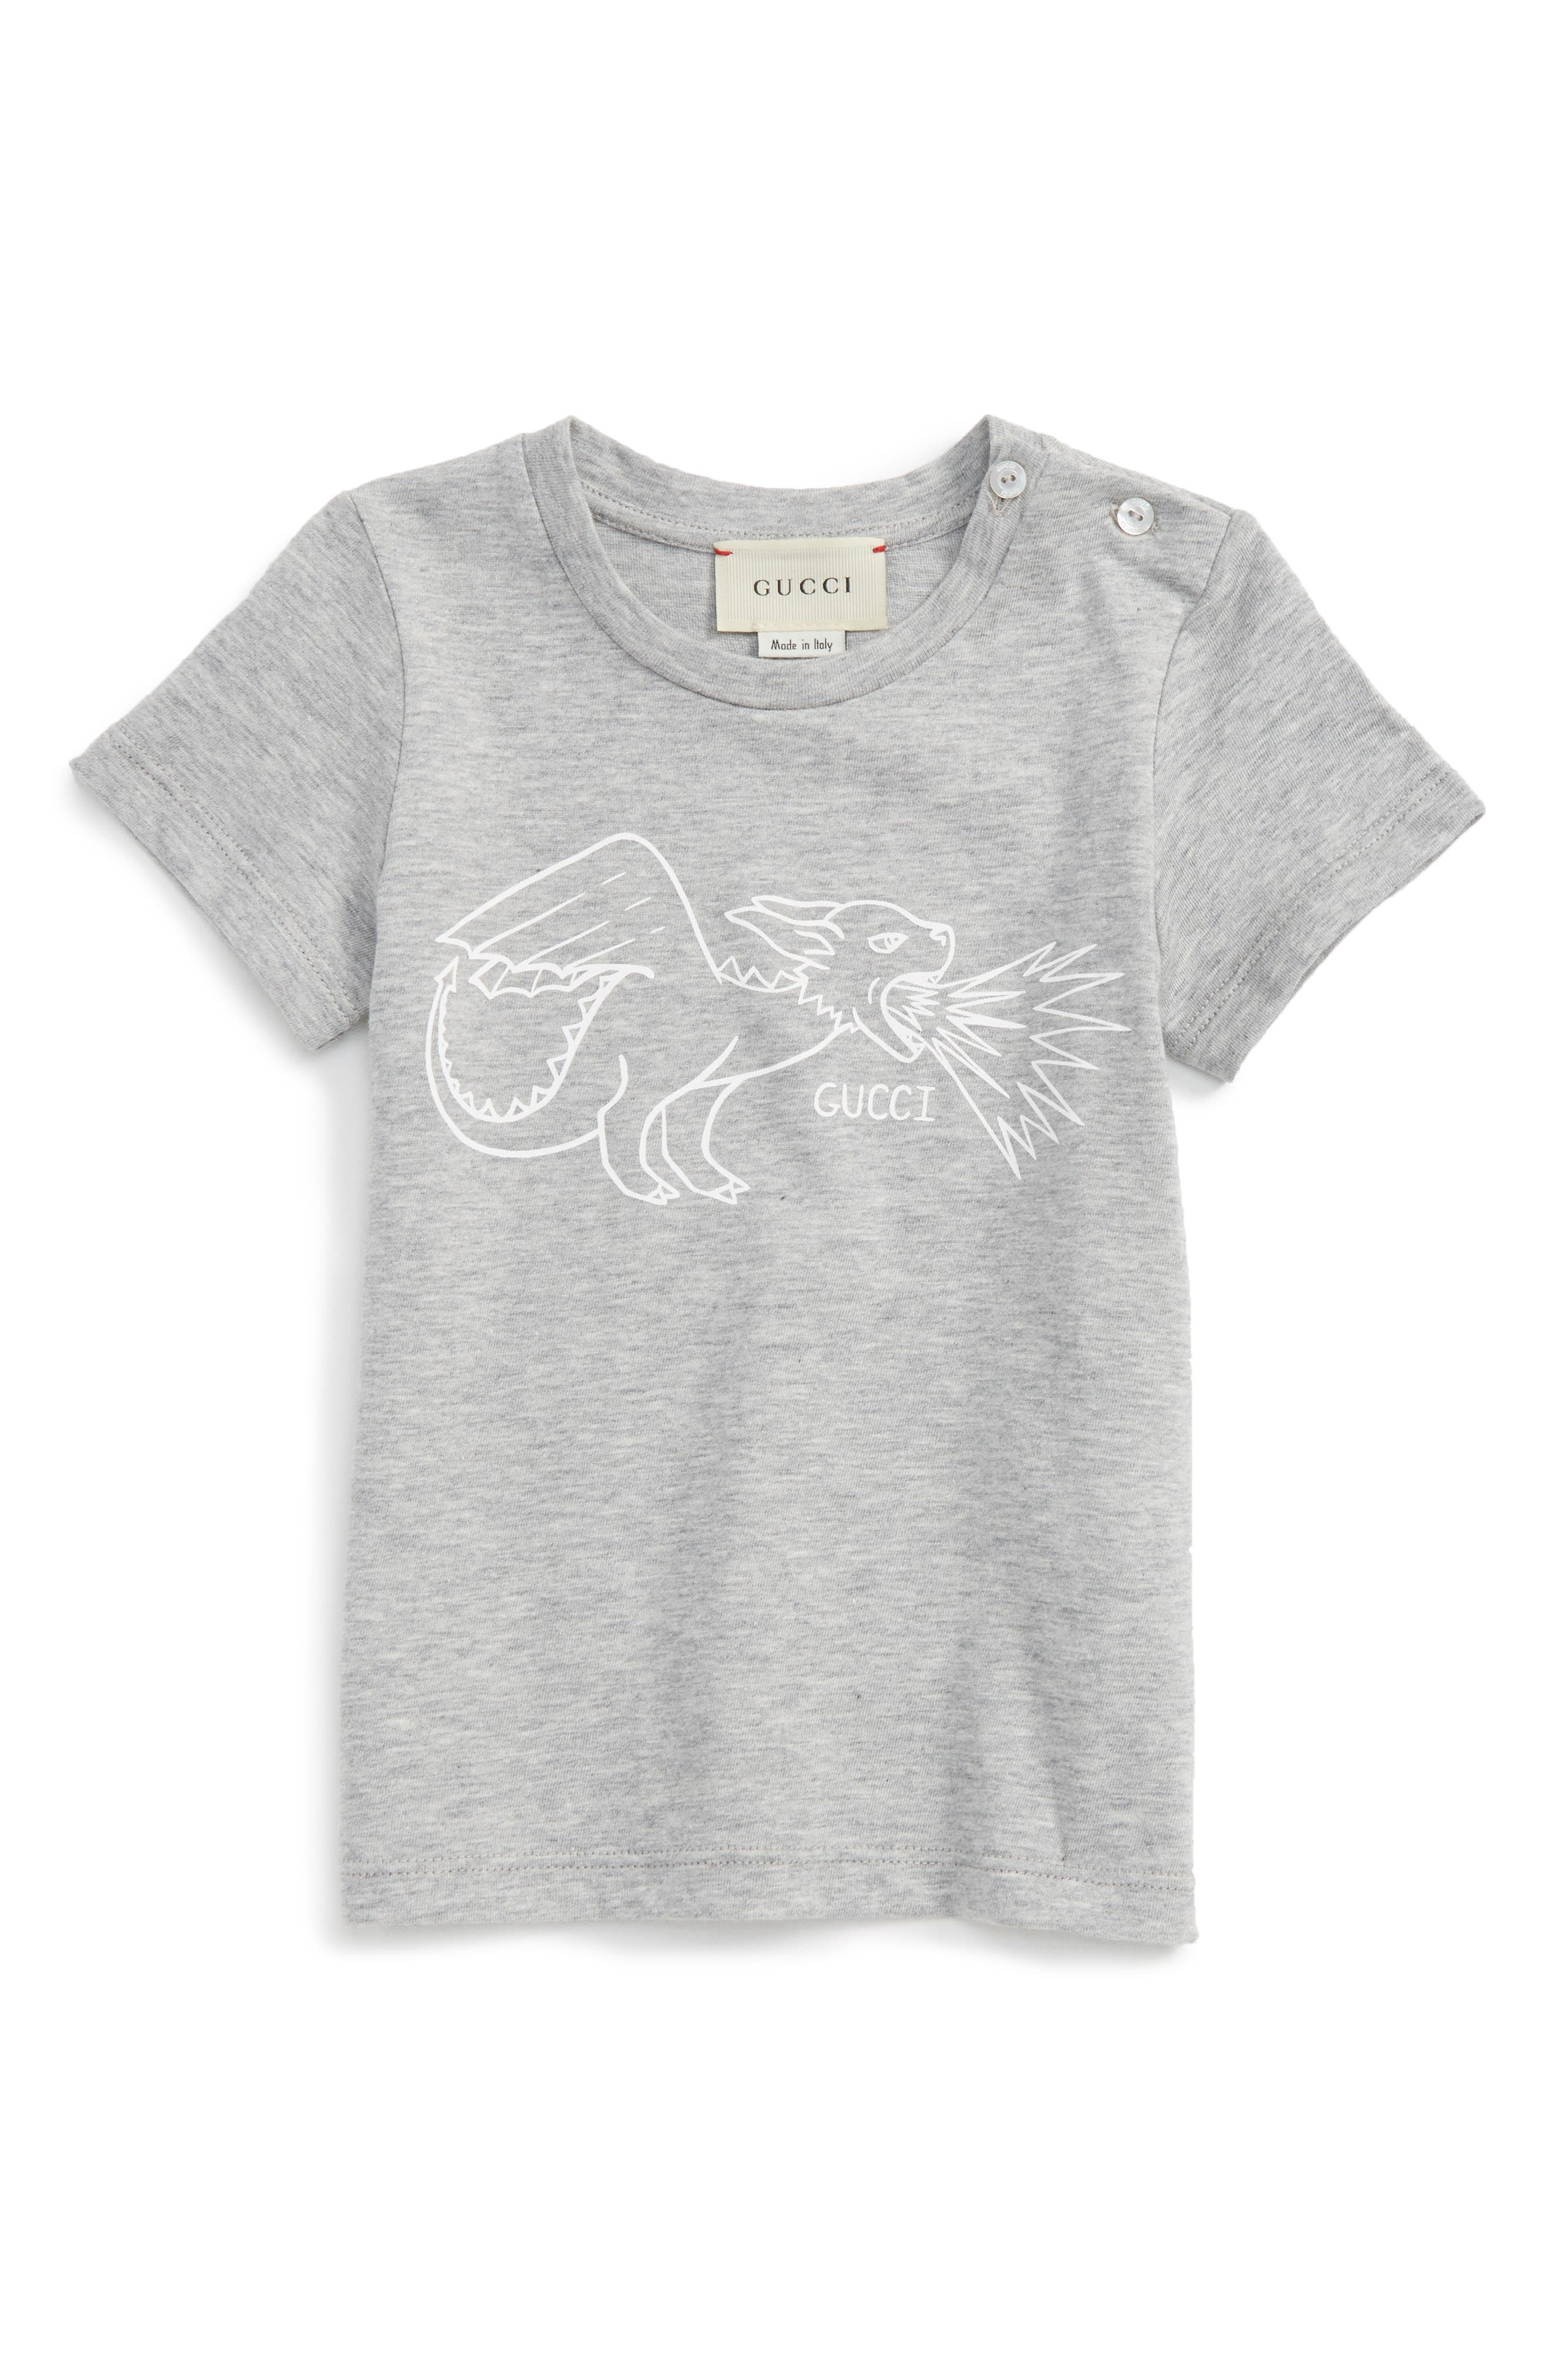 Gucci Dragon Graphic T-Shirt (Baby)